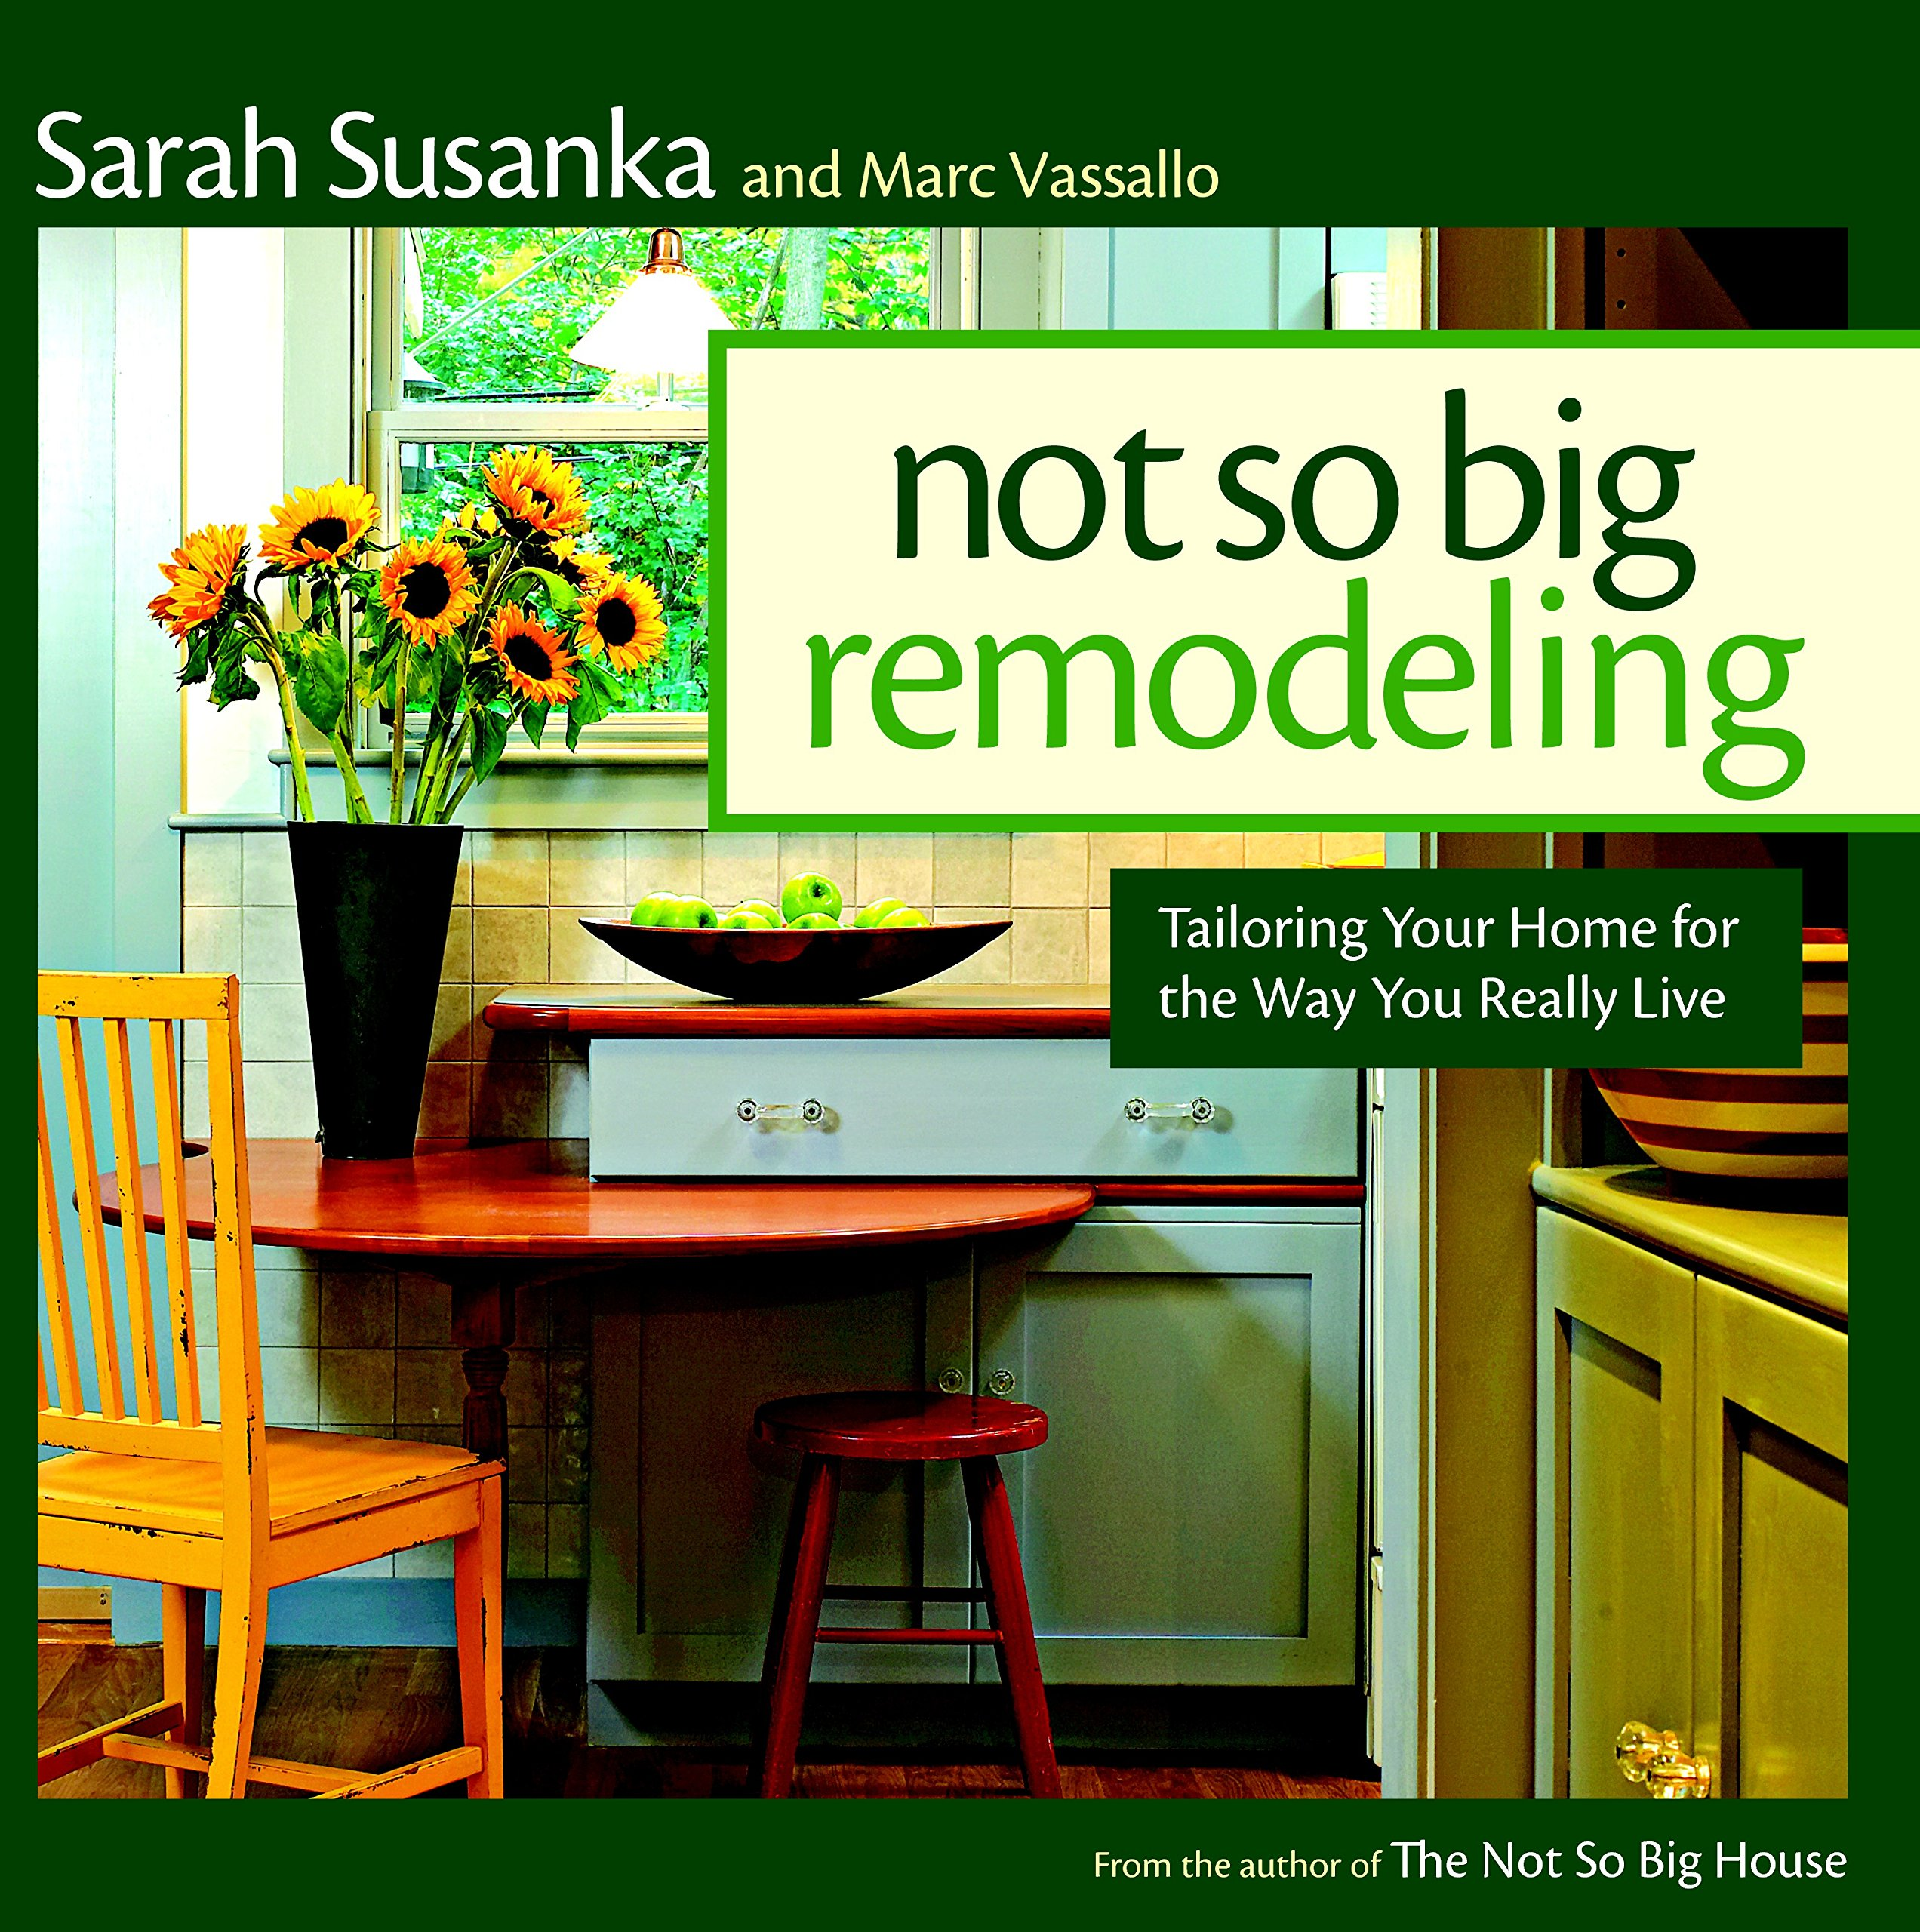 Not So Big Remodeling: Tailoring Your Home for the Way You Really Live by Taunton Press (Image #1)